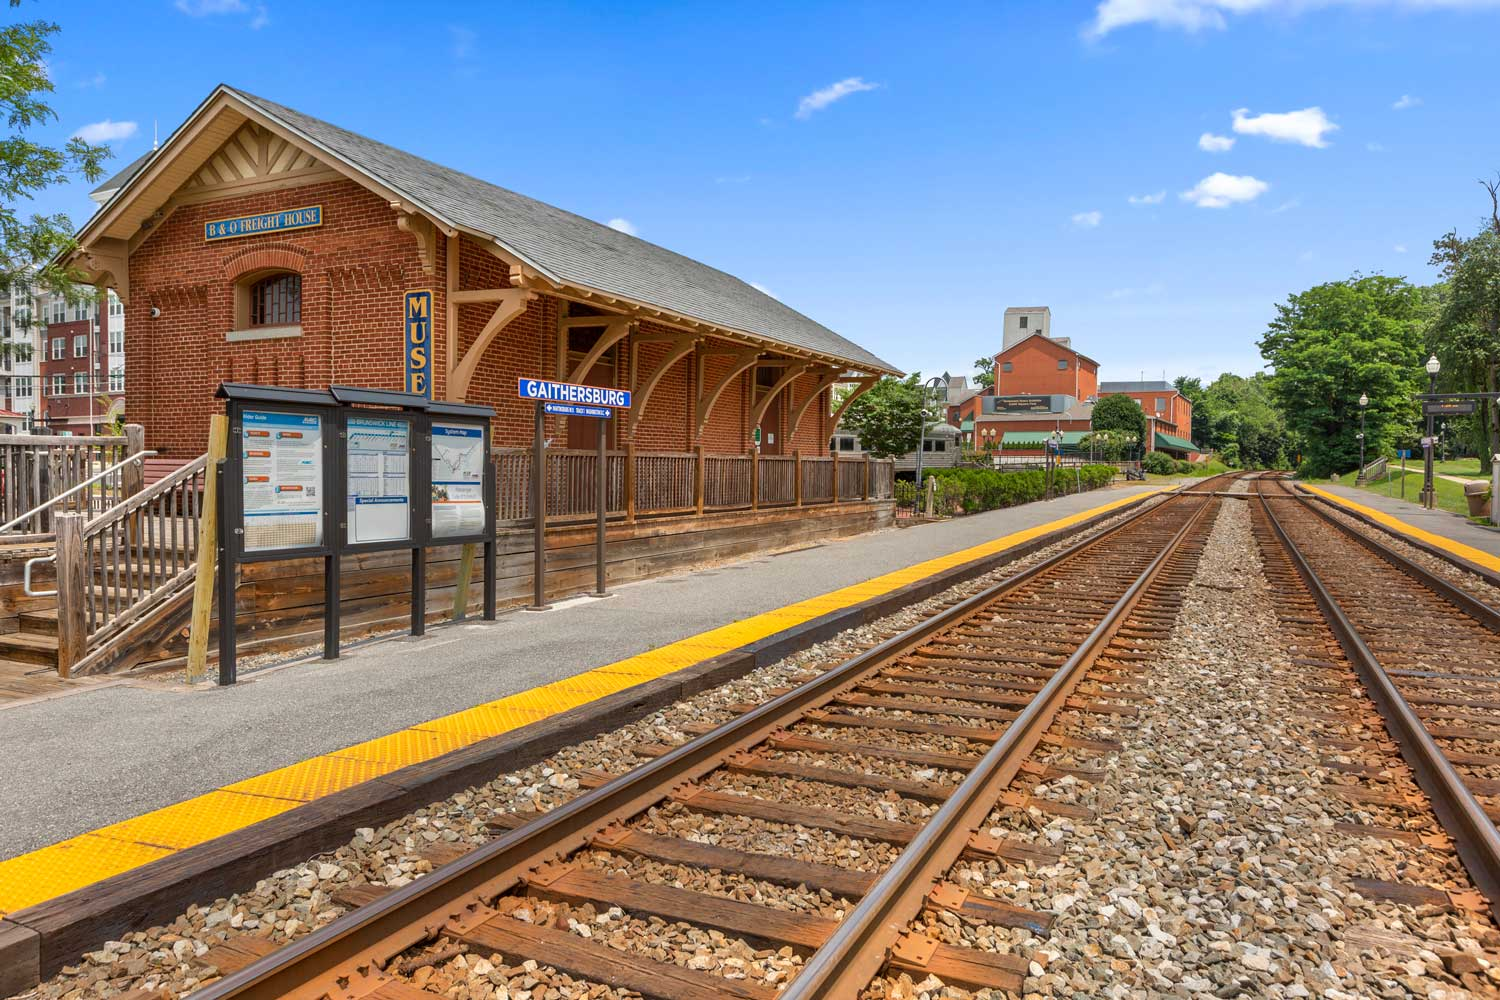 Gaithersburg MARC station is 5 minutes from Governor Square Apartments